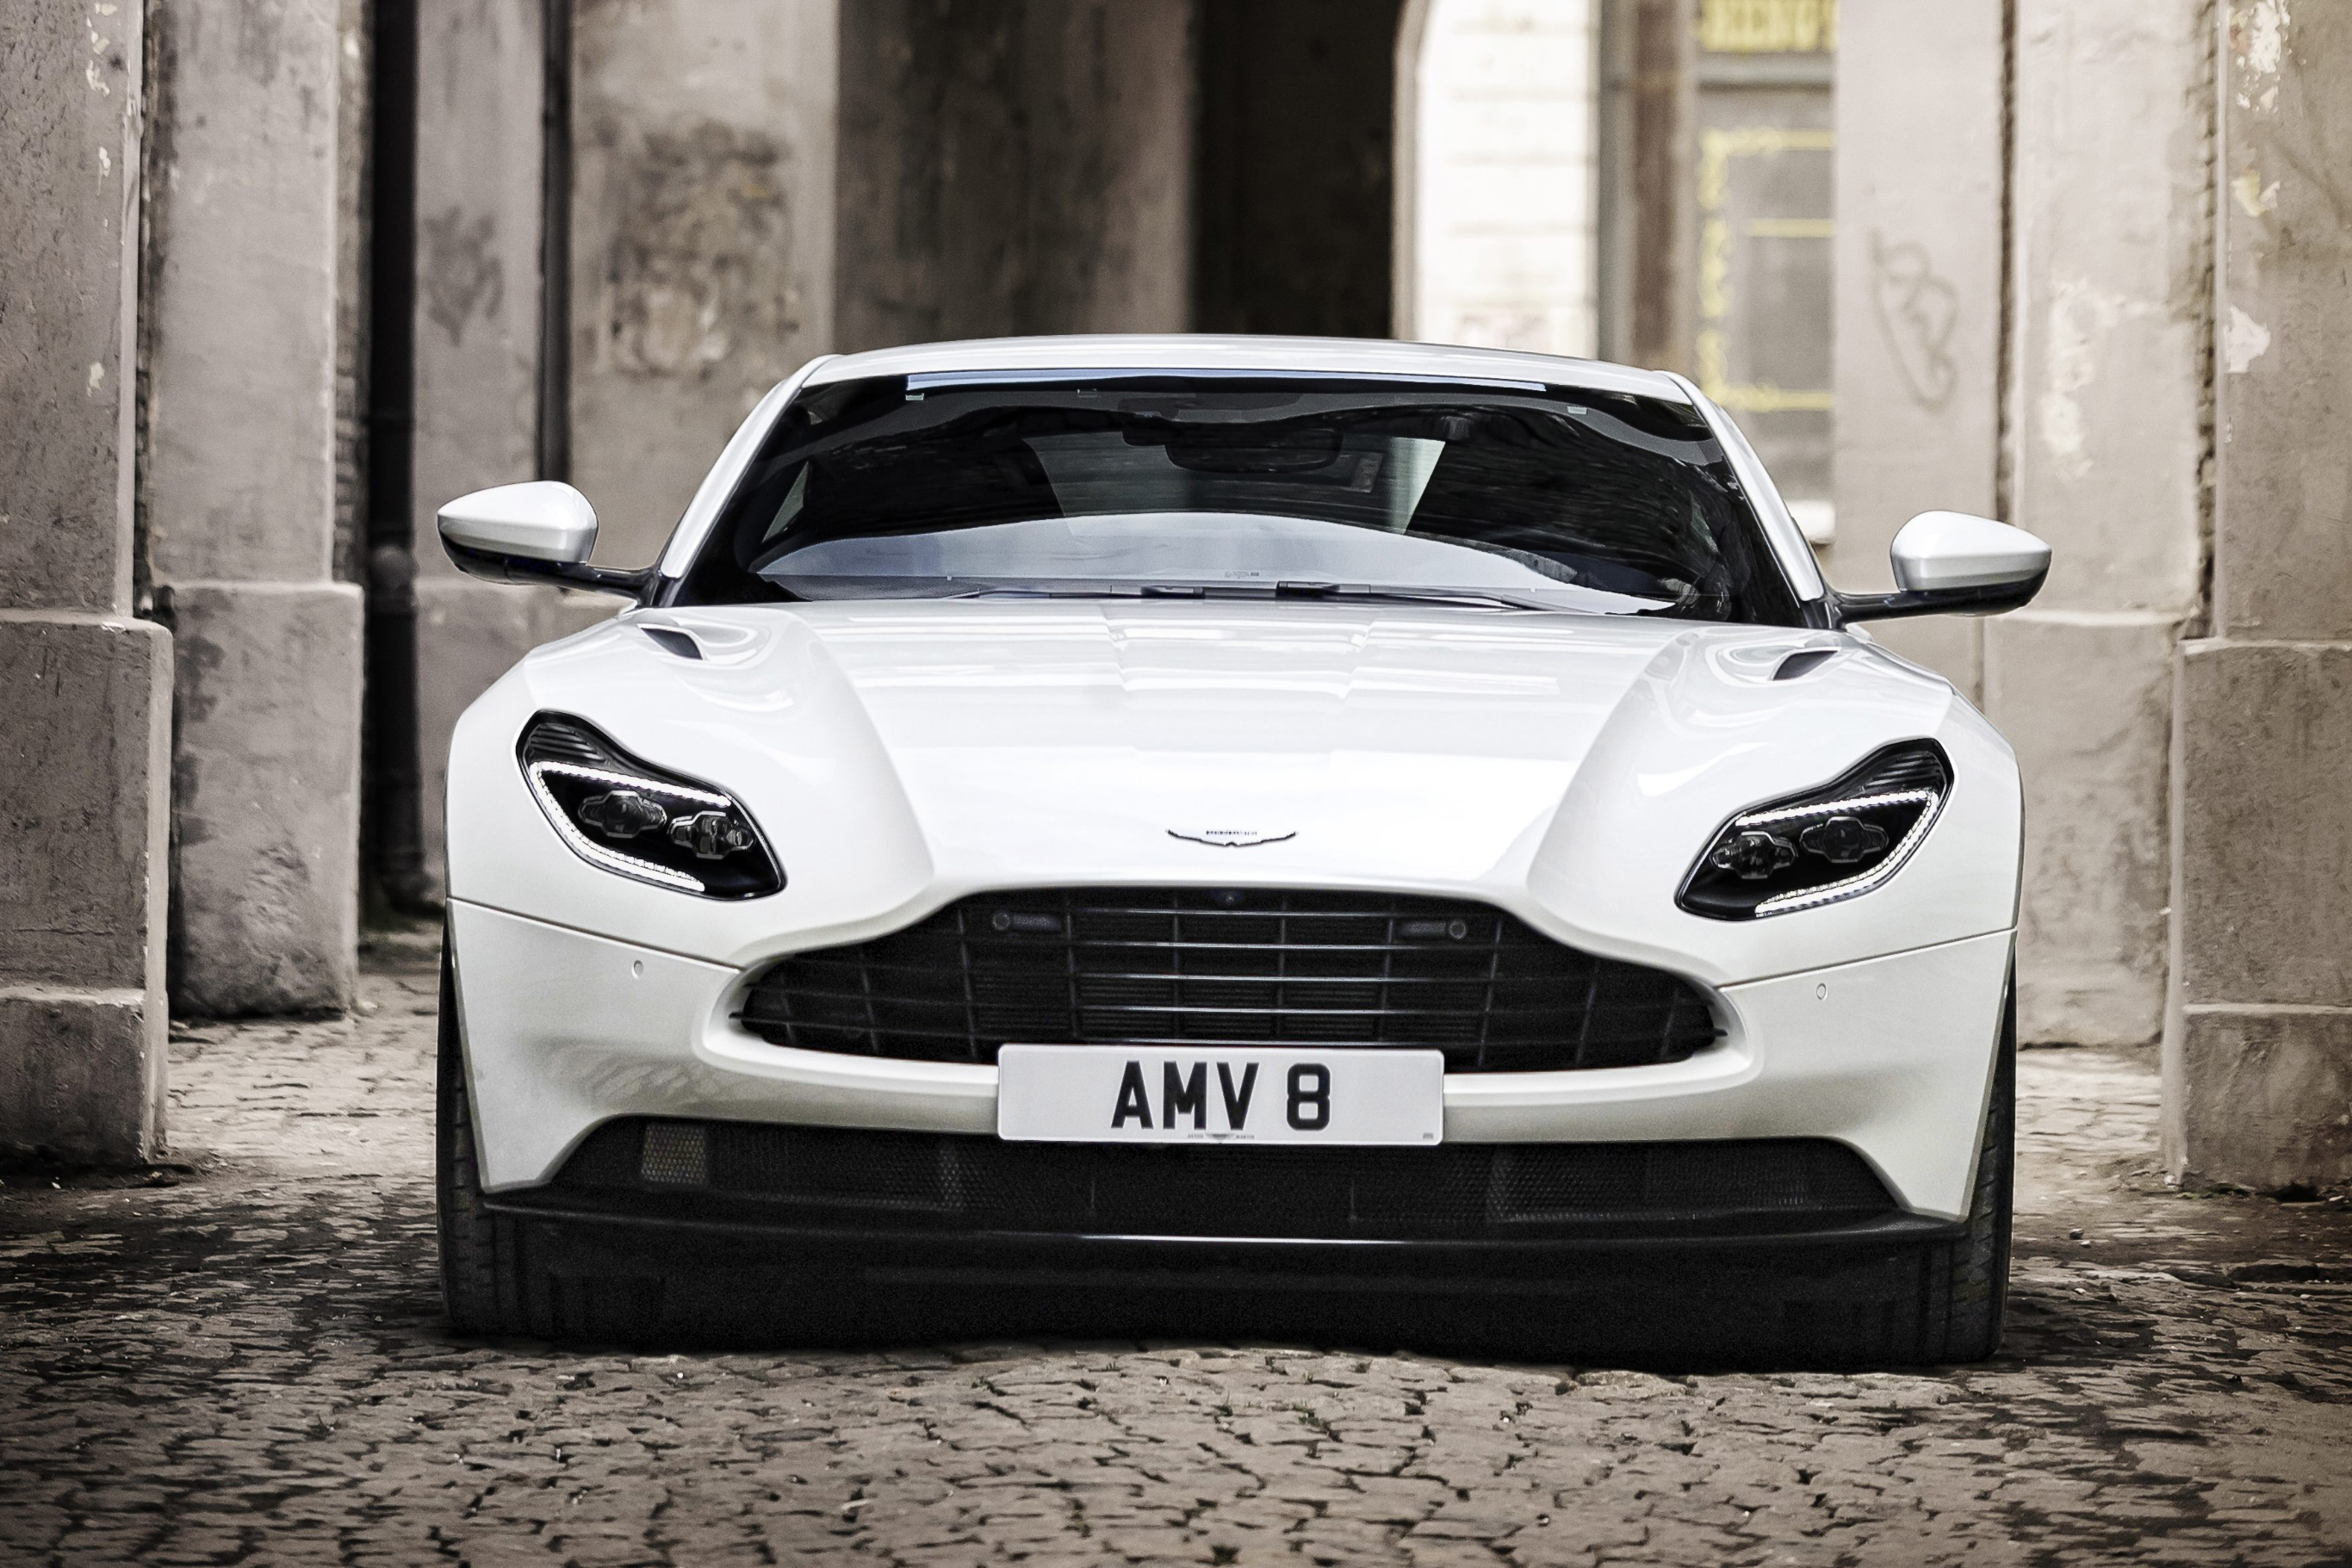 Aston Martin Db11 V8 Hd Cars 4k Wallpapers Images Backgrounds